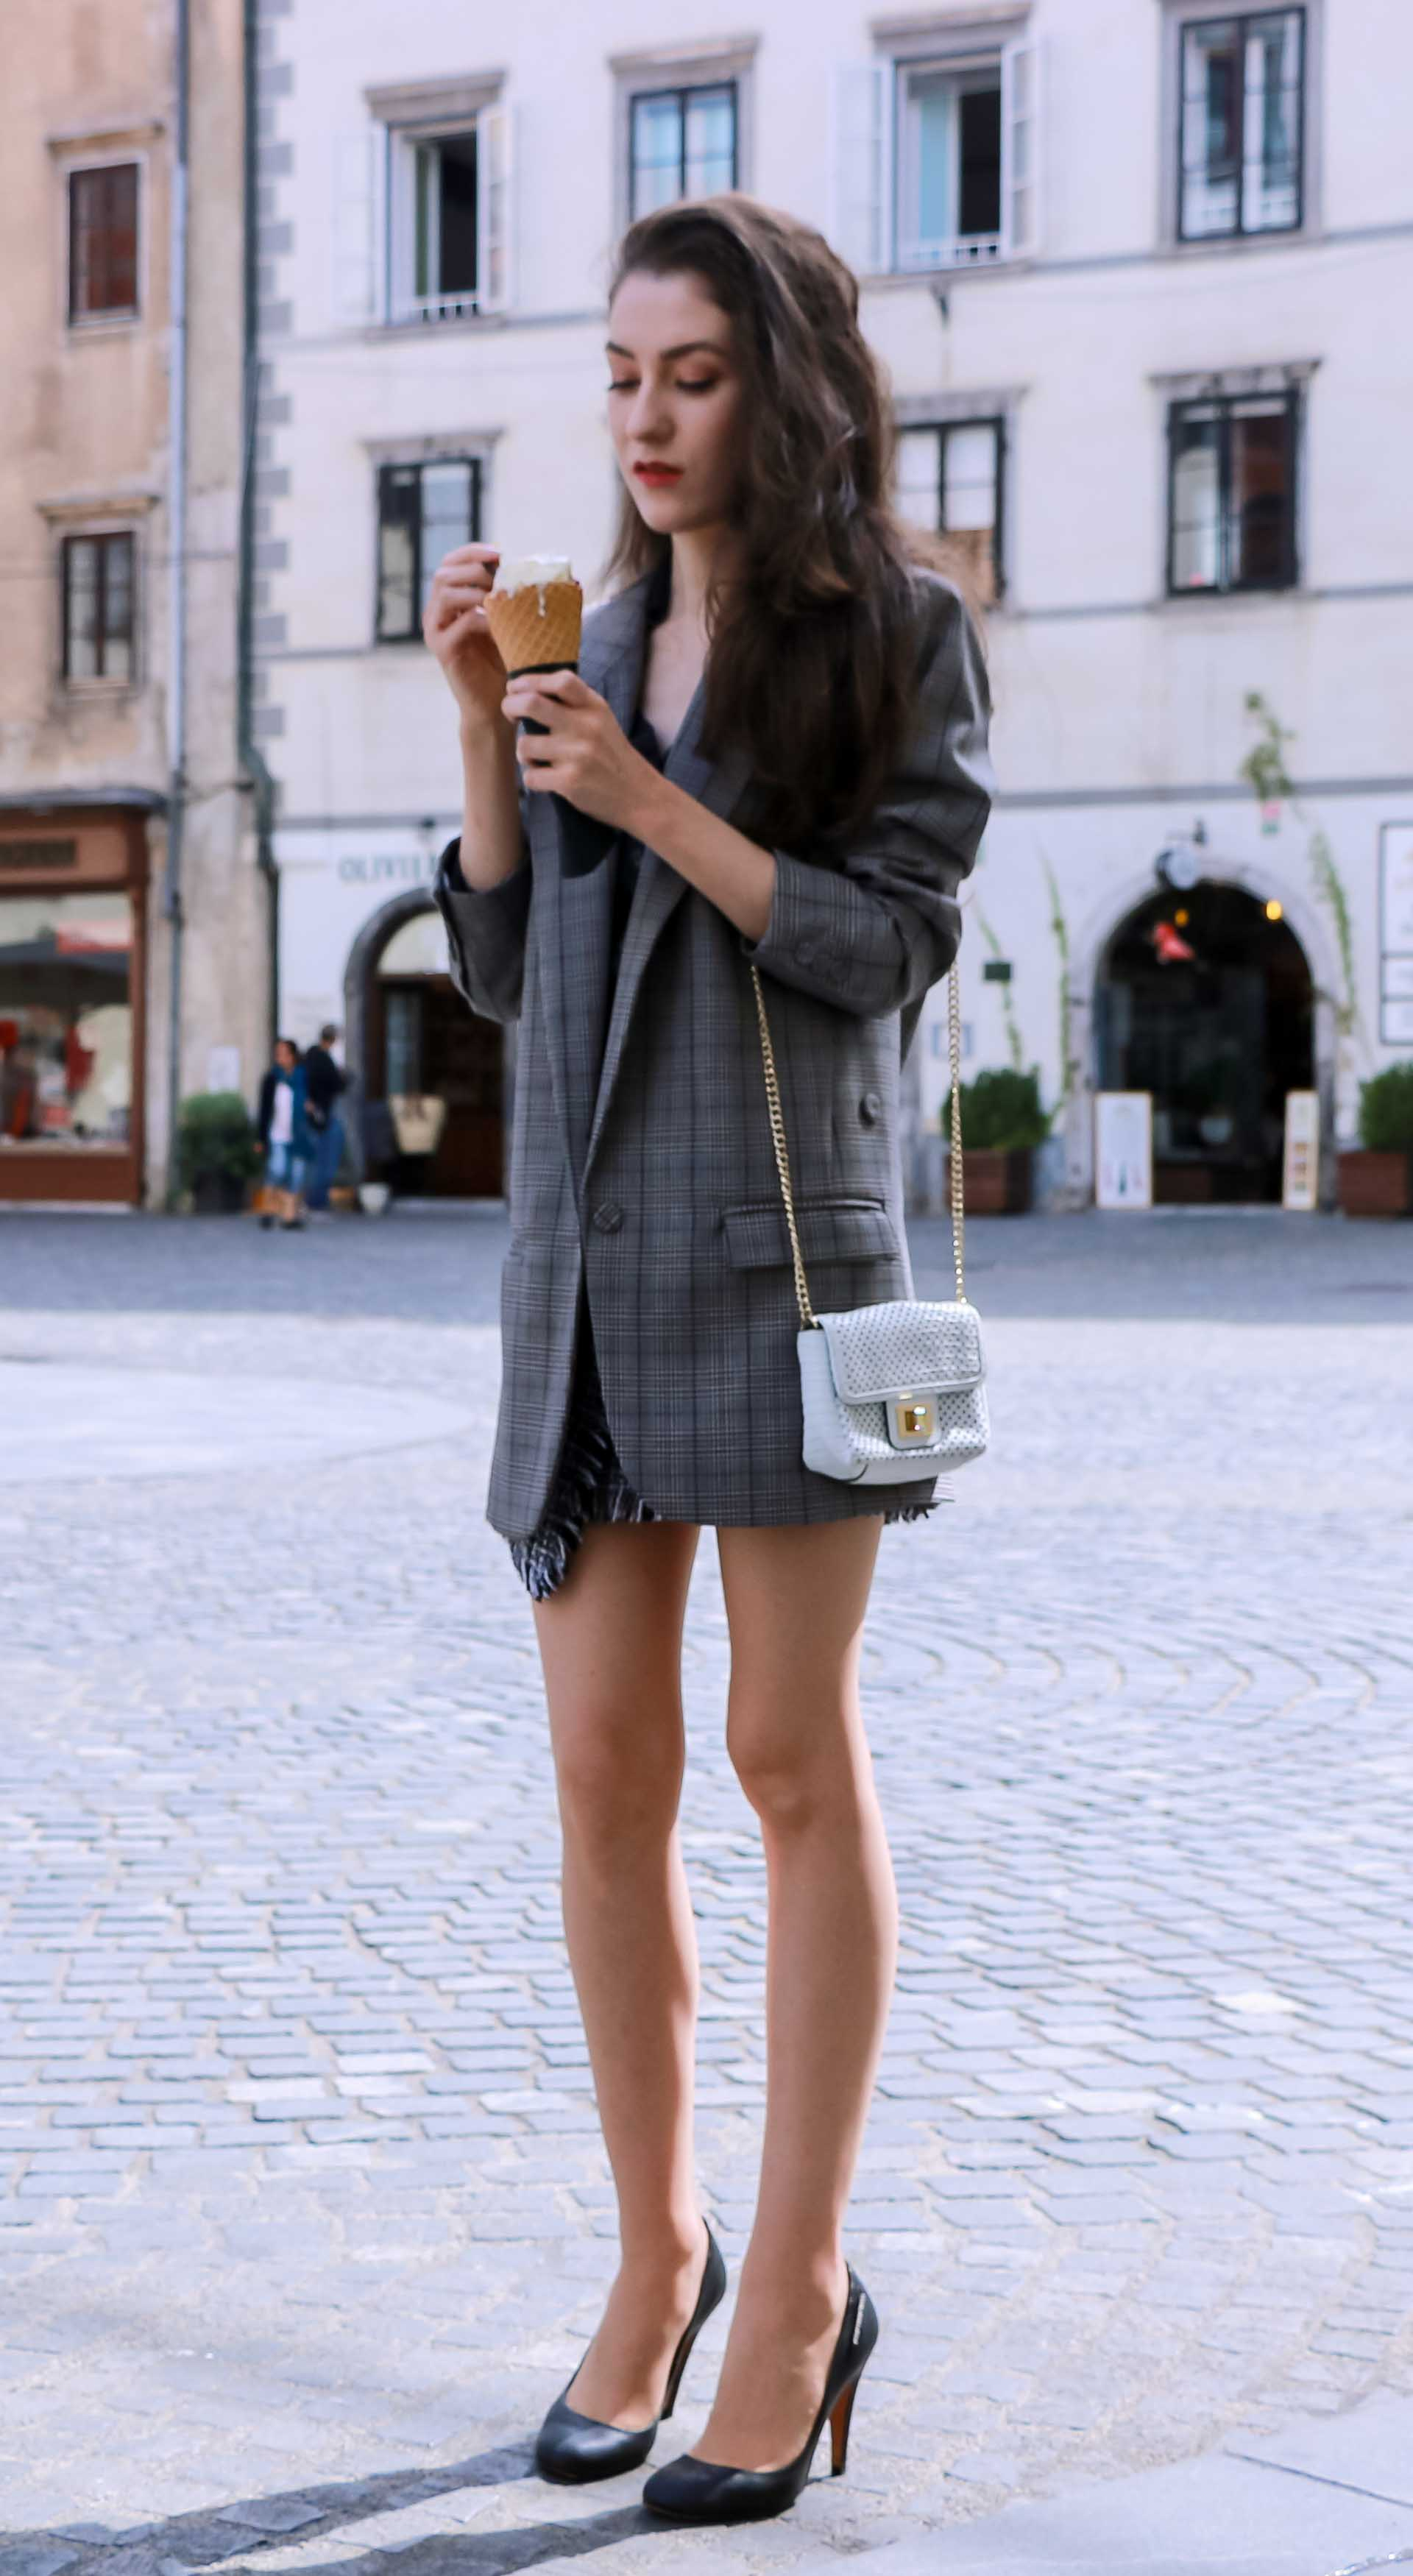 Fashion Blogger Veronika Lipar of Brunette from Wall Street dressed in Erika Cavallini oversized boyfriend checked blazer with short tweed black and white mini skirt from streets, black pumps and white chain strap shoulder bag while standing down the street in Ljubljana with ice cream in her hand